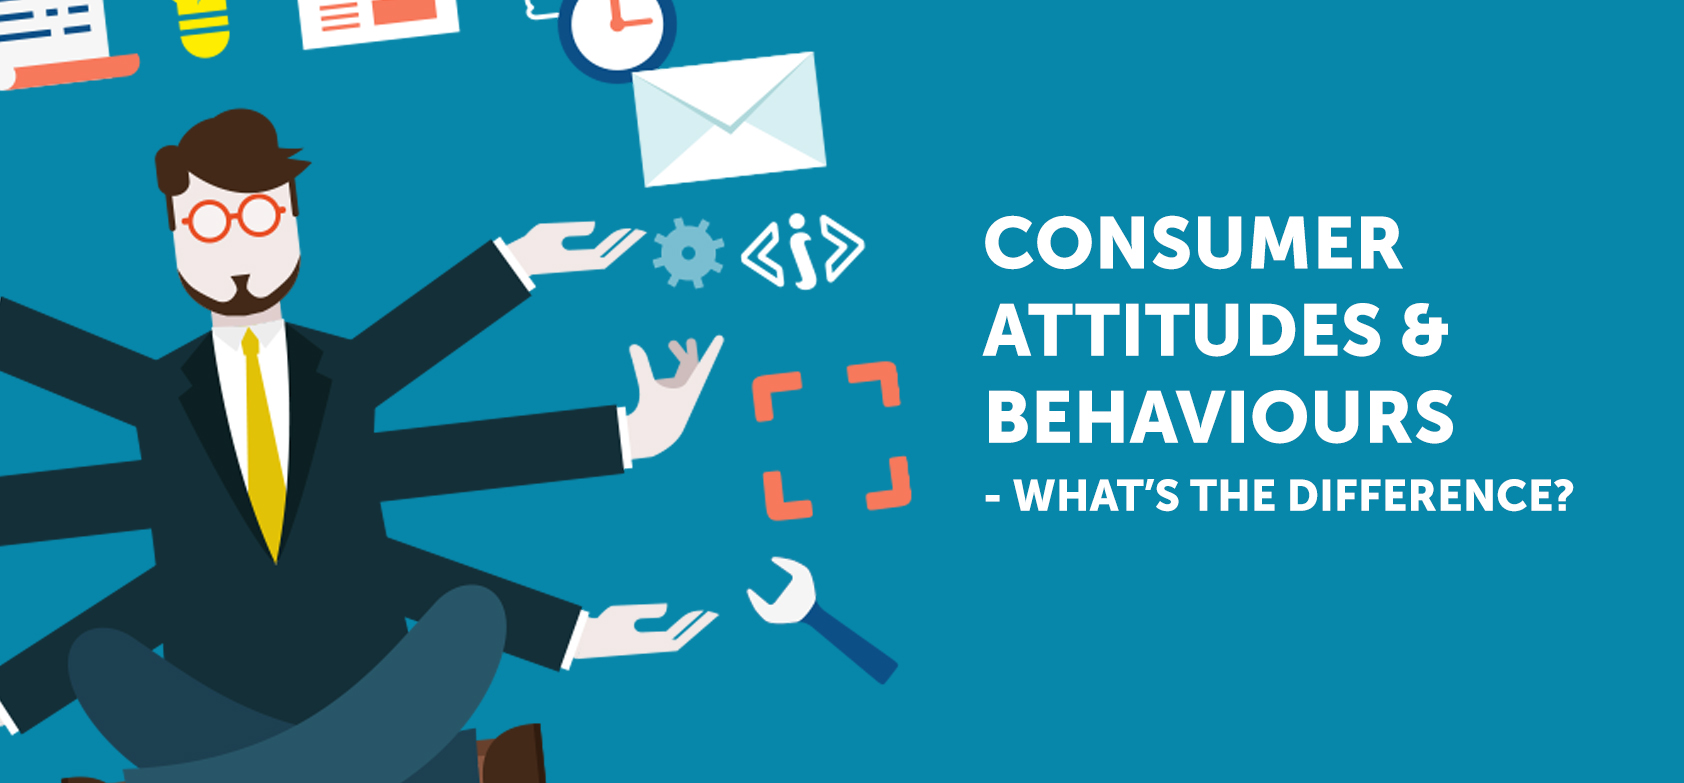 Consumer Attitudes & Behaviours - What's the Difference?